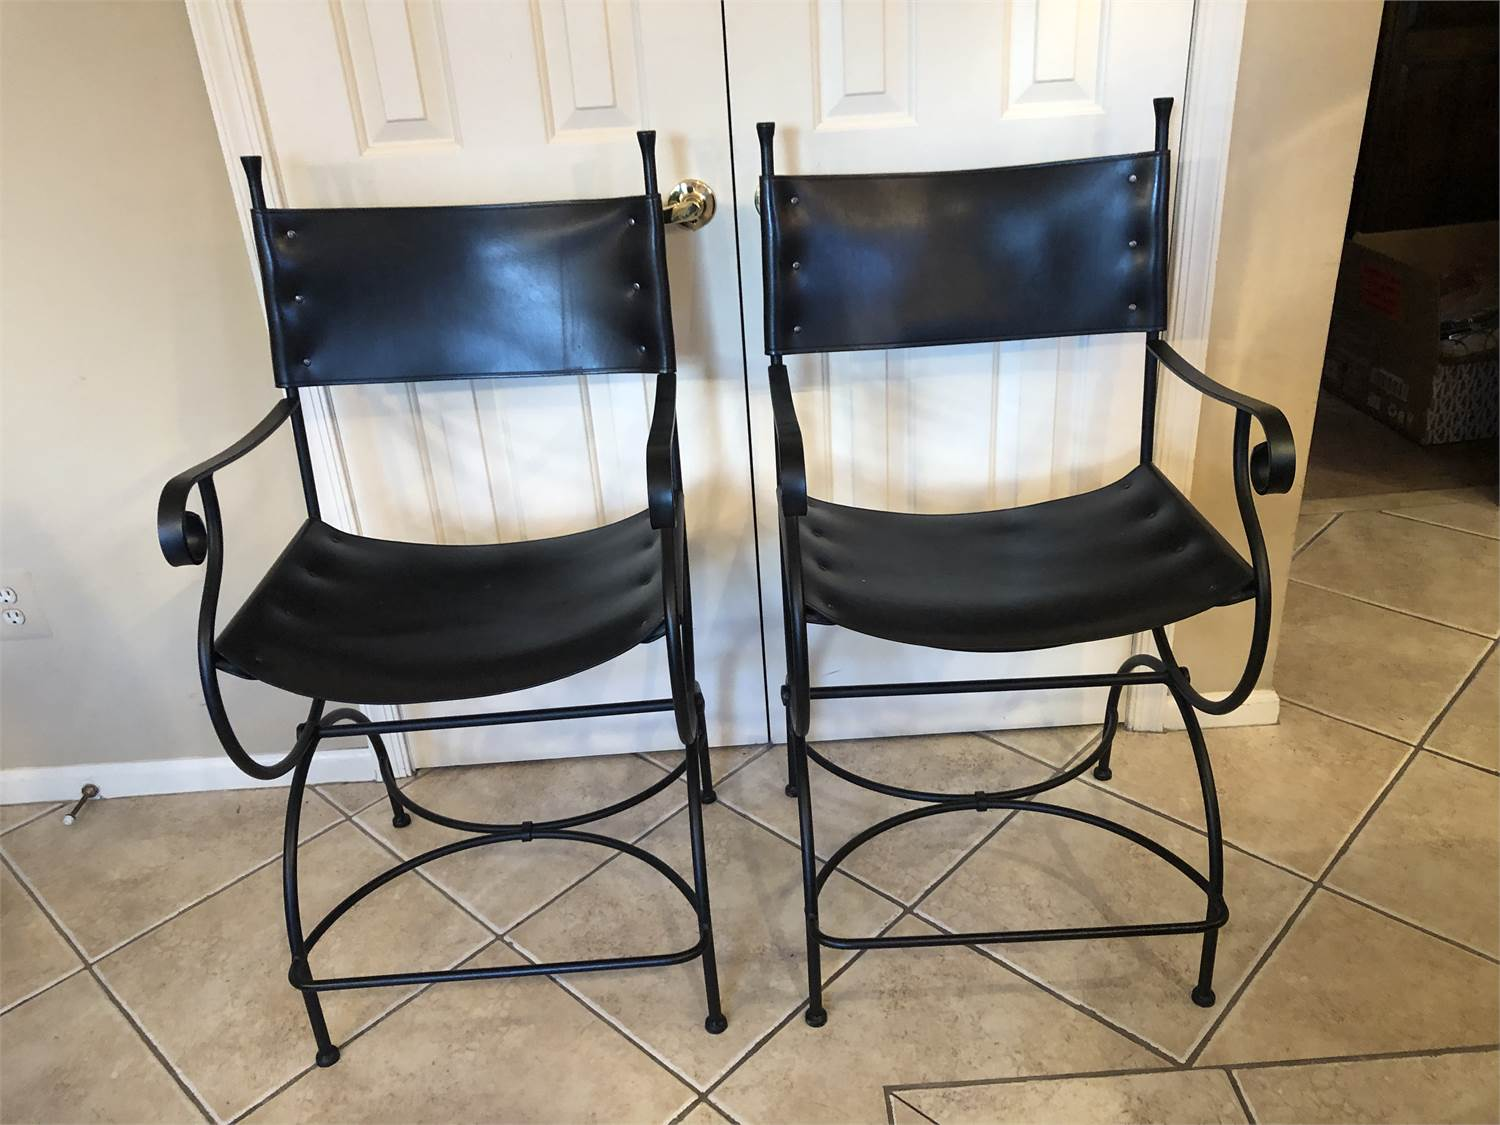 Beautiful barstools, black leather, with scroll arms and legs, just lovely, Cherry Hill NJ pickup